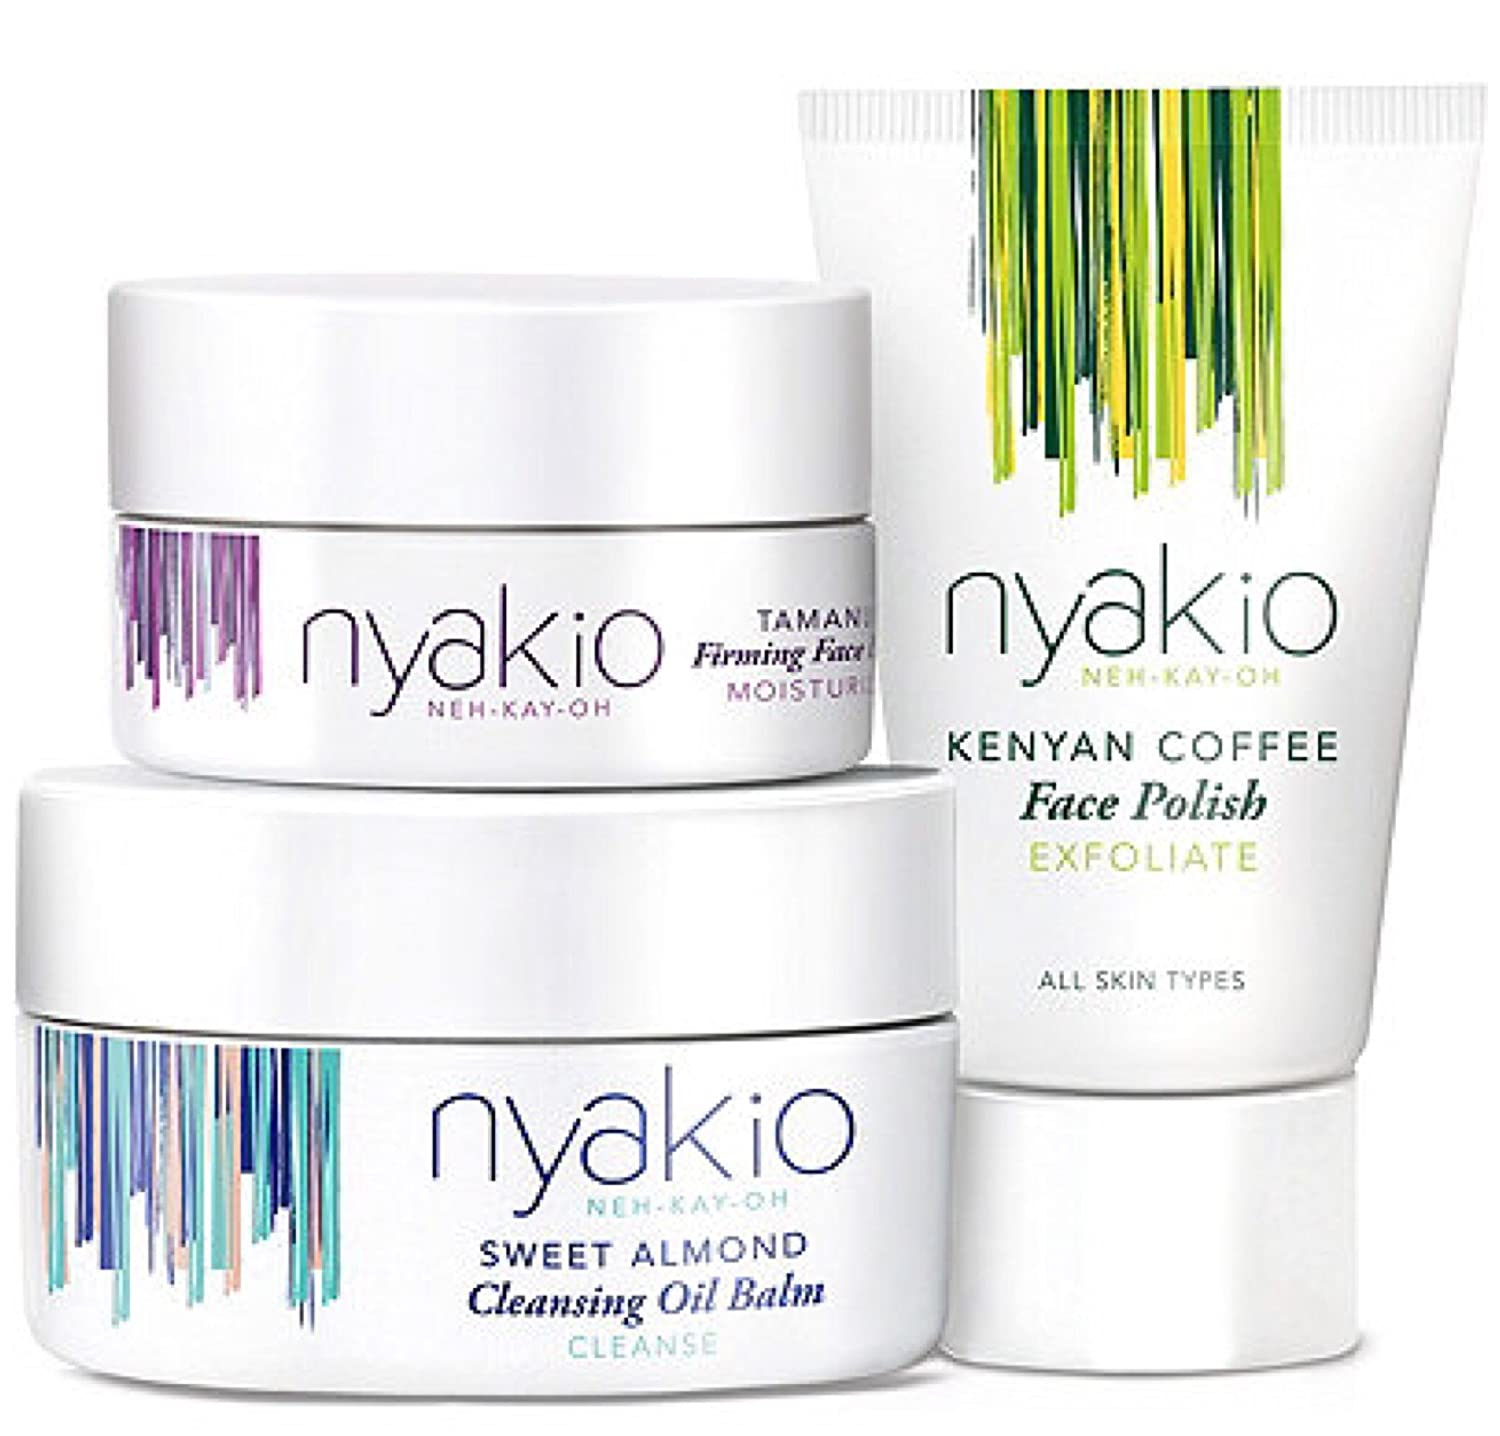 Nyakio: Natural, Multi-Cultural Skin Care For All Ages, Skin Types andBackgrounds images